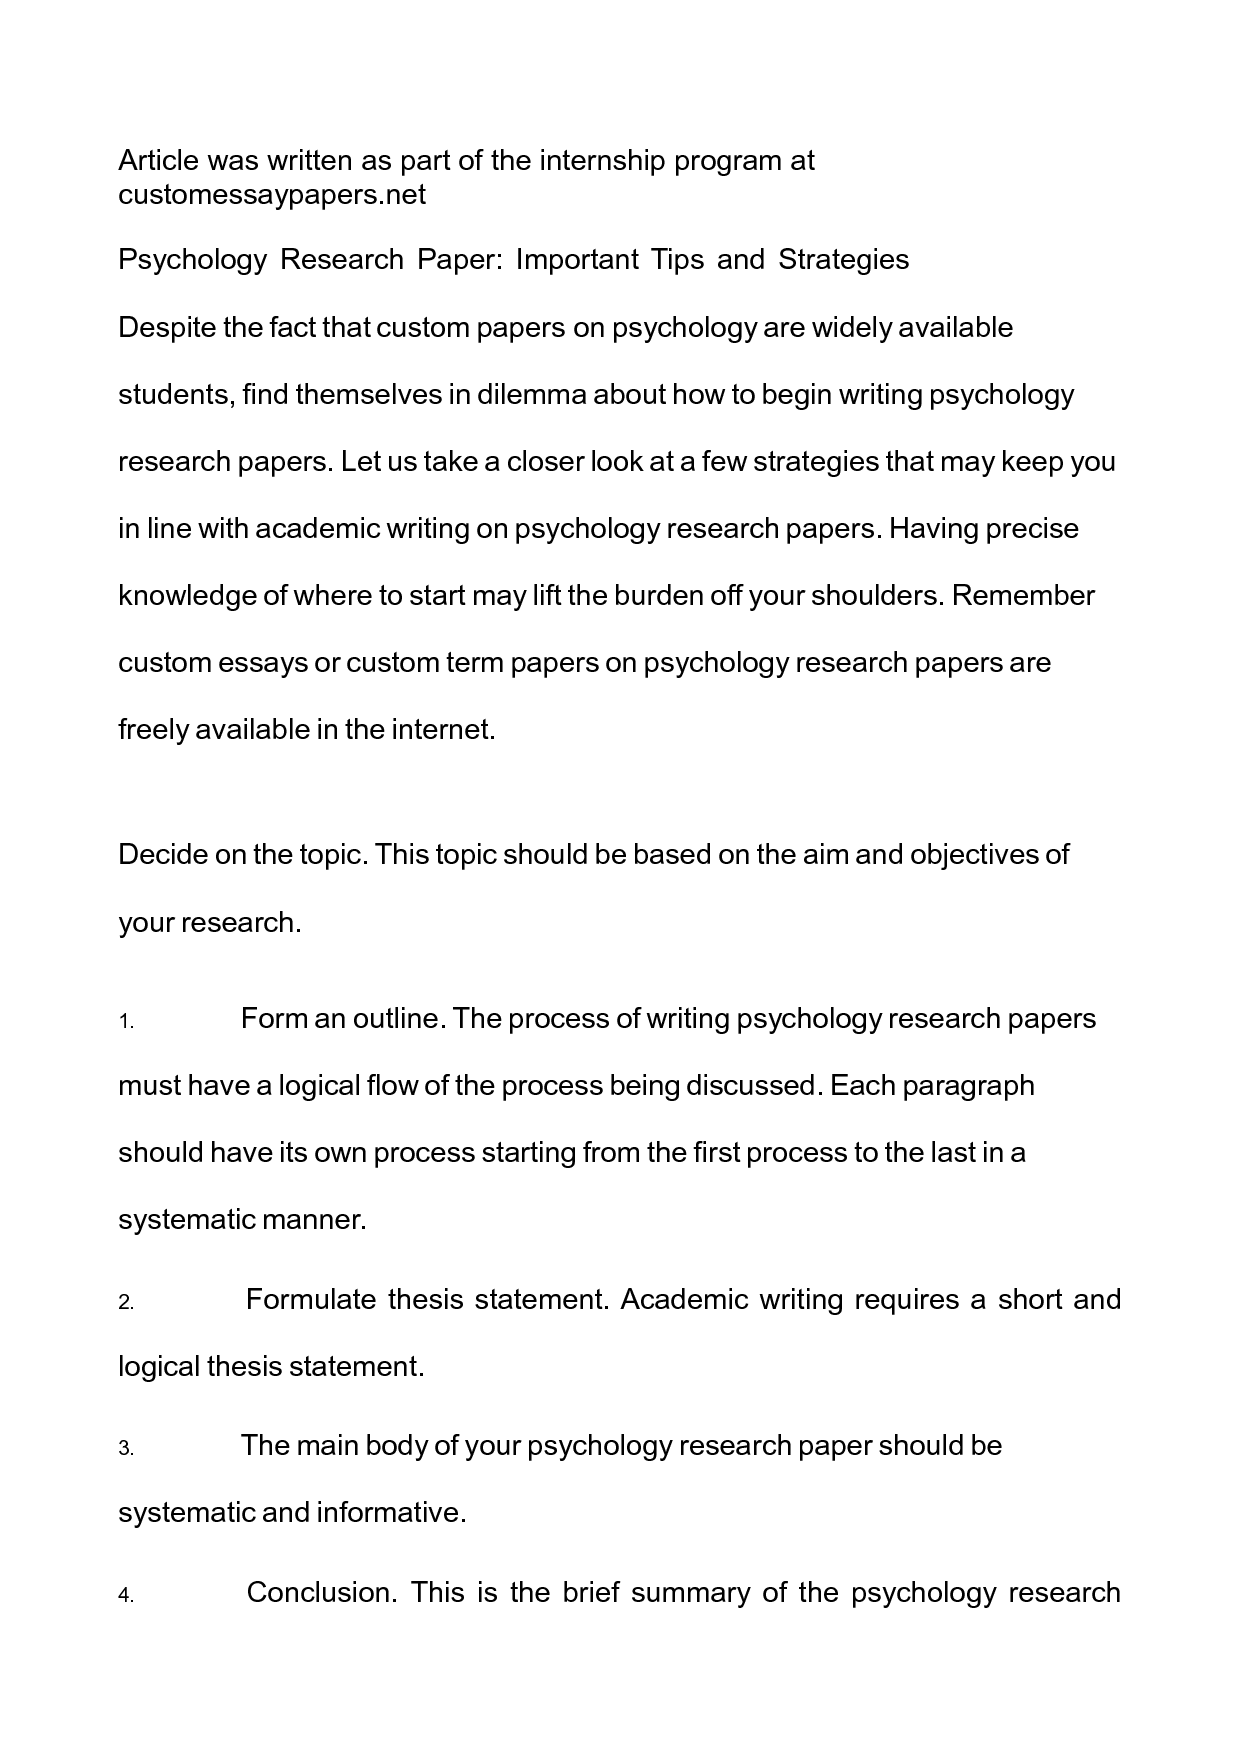 003 Research Papers In Psychology Paper Writing Outstanding Recent Latest On Topics Cognitive Full